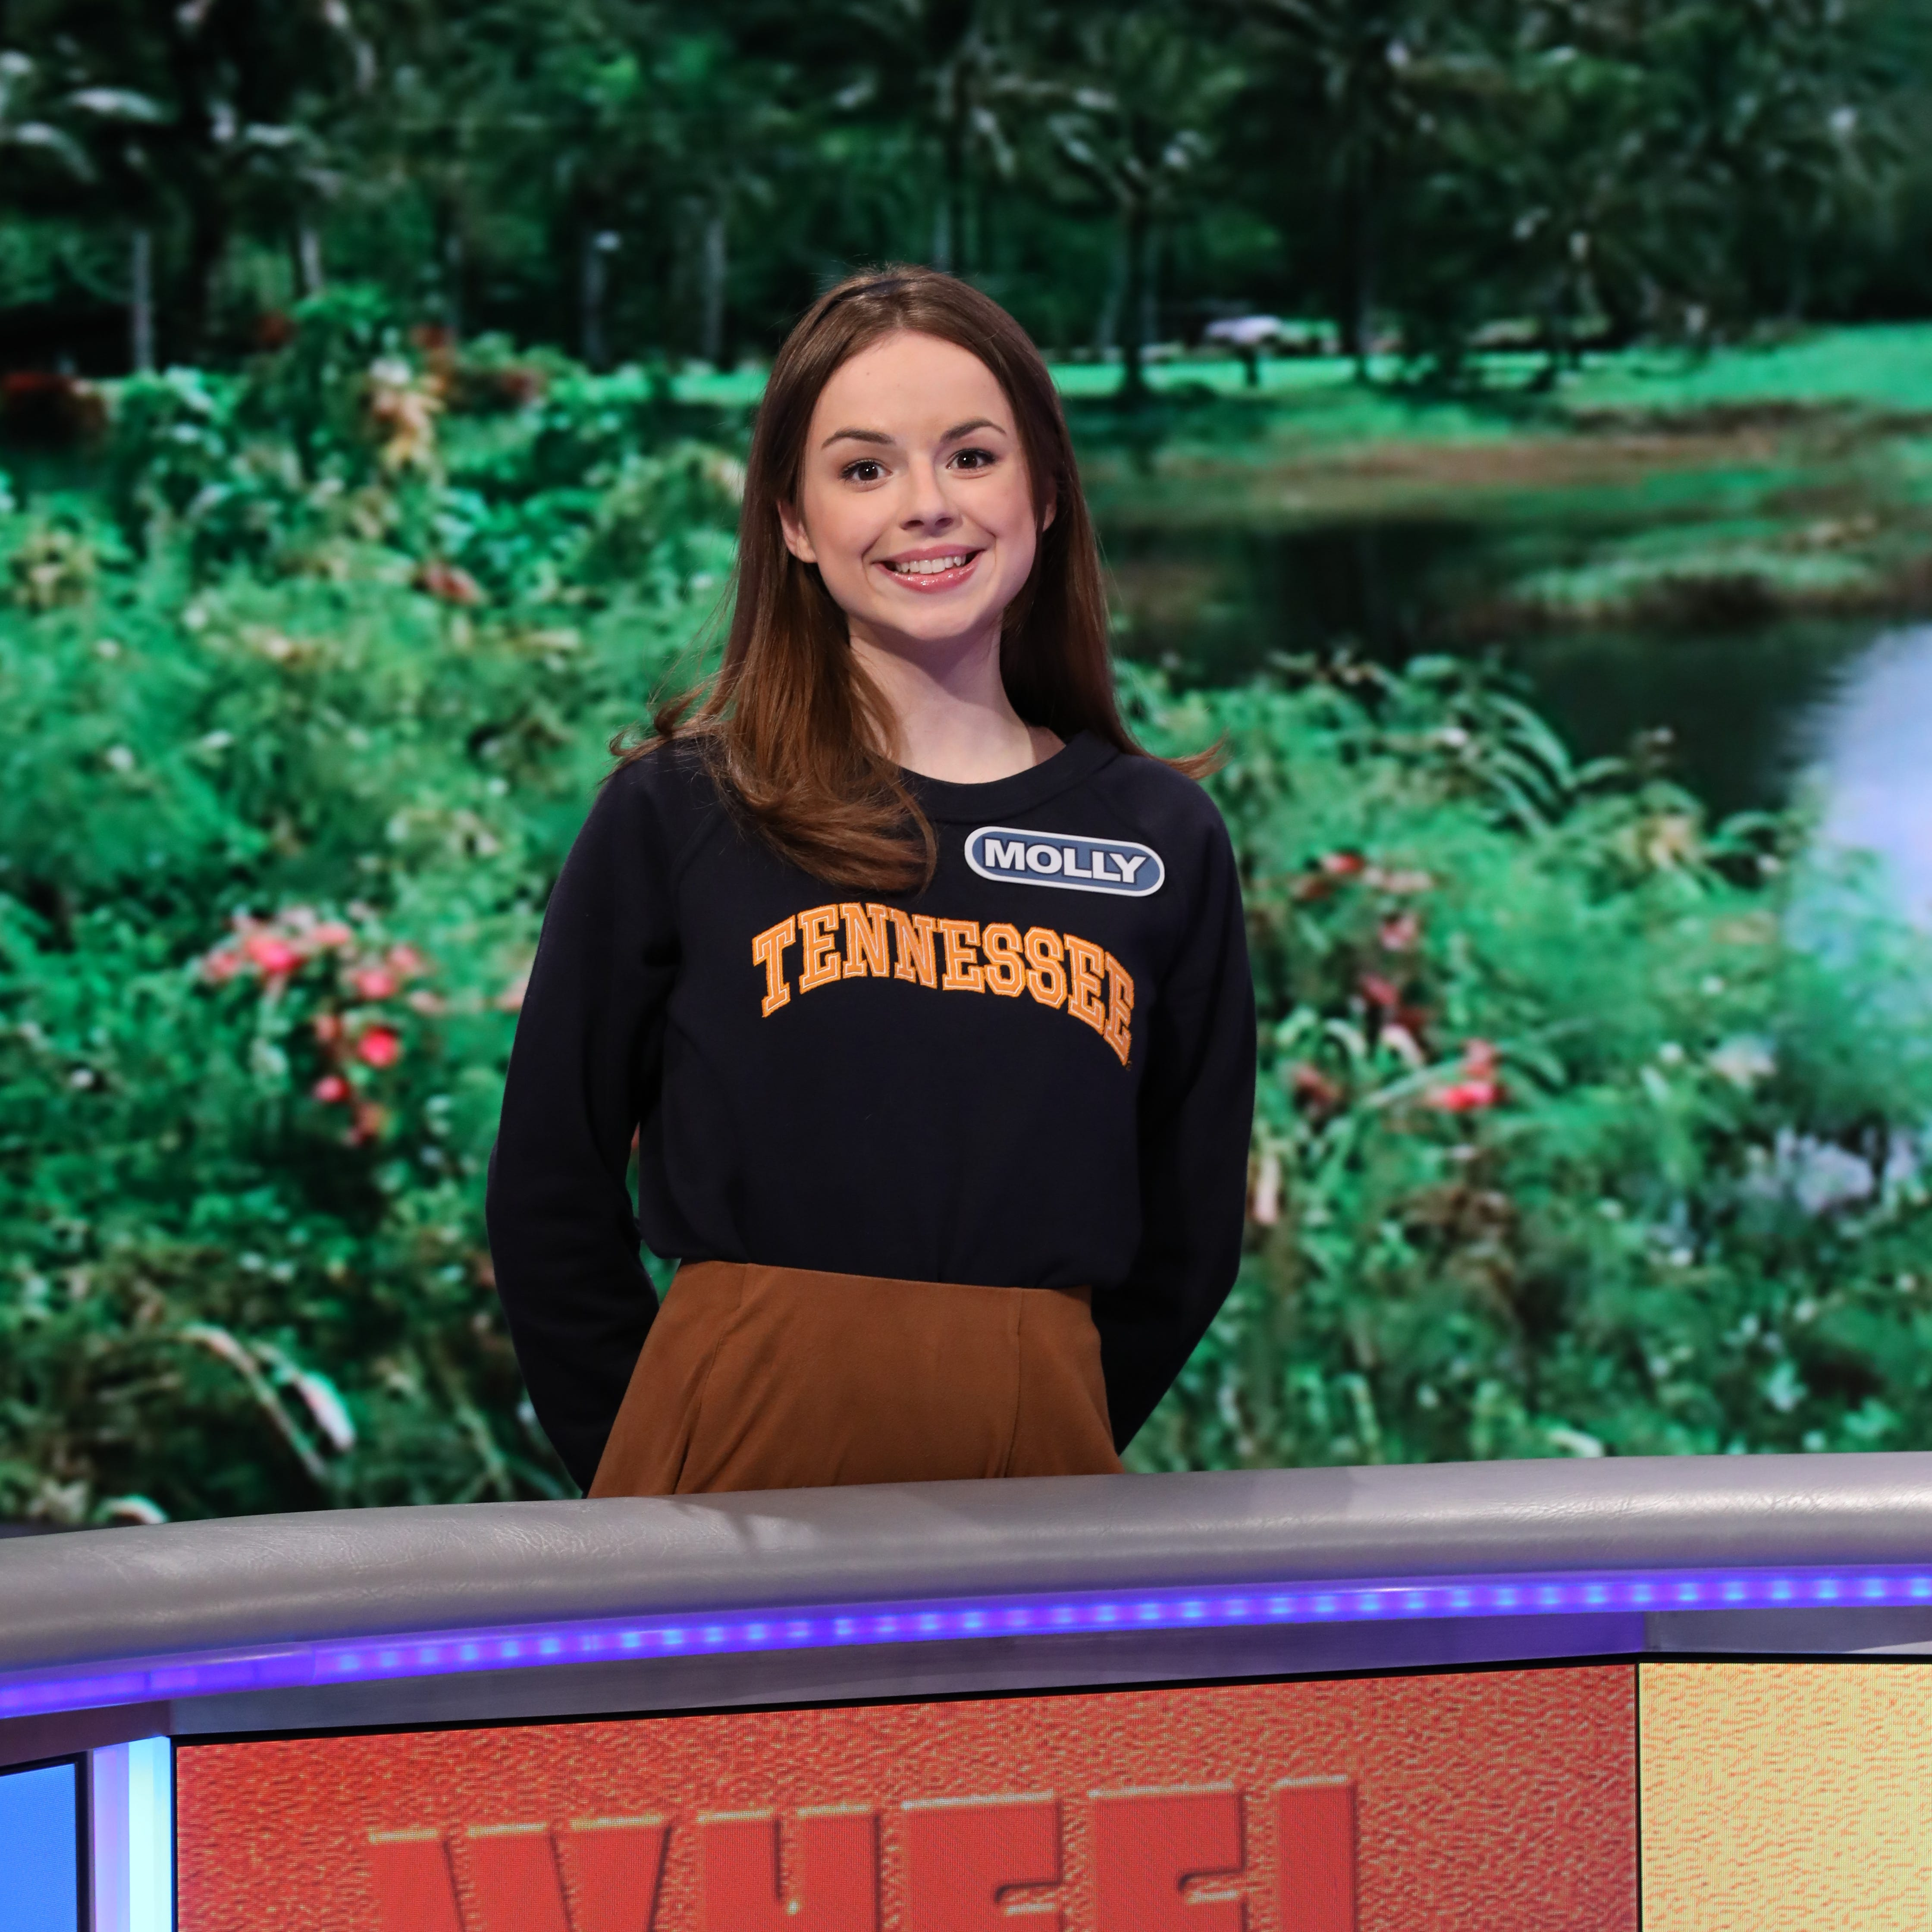 University of Tennessee student Molly Rodabaugh to compete on 'Wheel of Fortune'